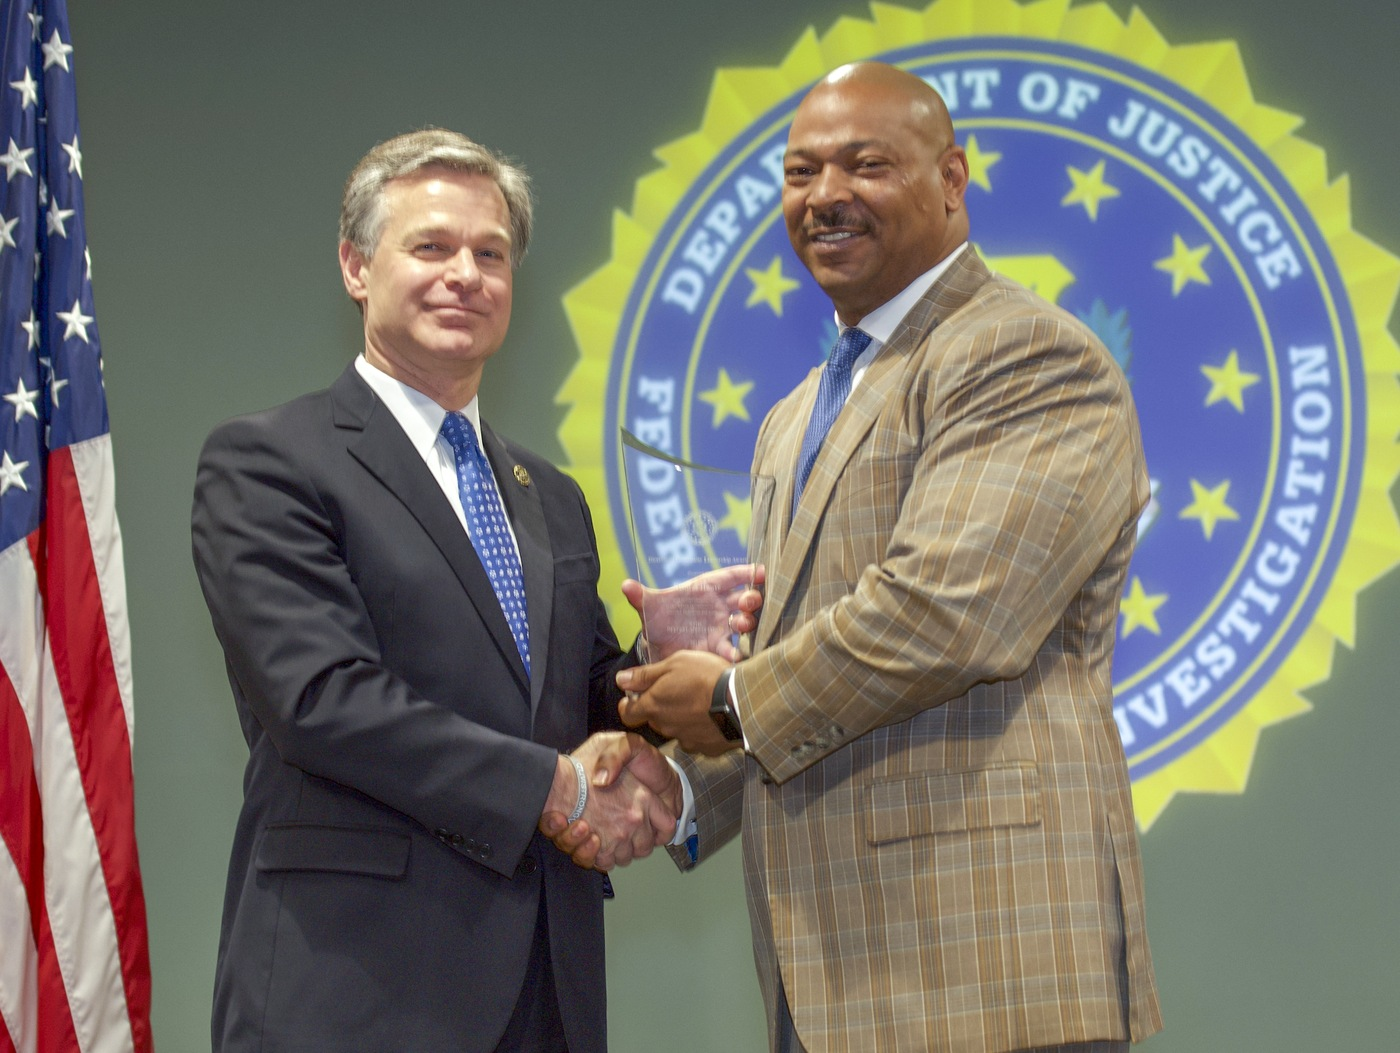 FBI Director Christopher Wray presents Memphis Division recipient Dismas House (represented by Gerald Brown) with the Director's Community Leadership Award (DCLA) at a ceremony at FBI Headquarters on May 3, 2019.